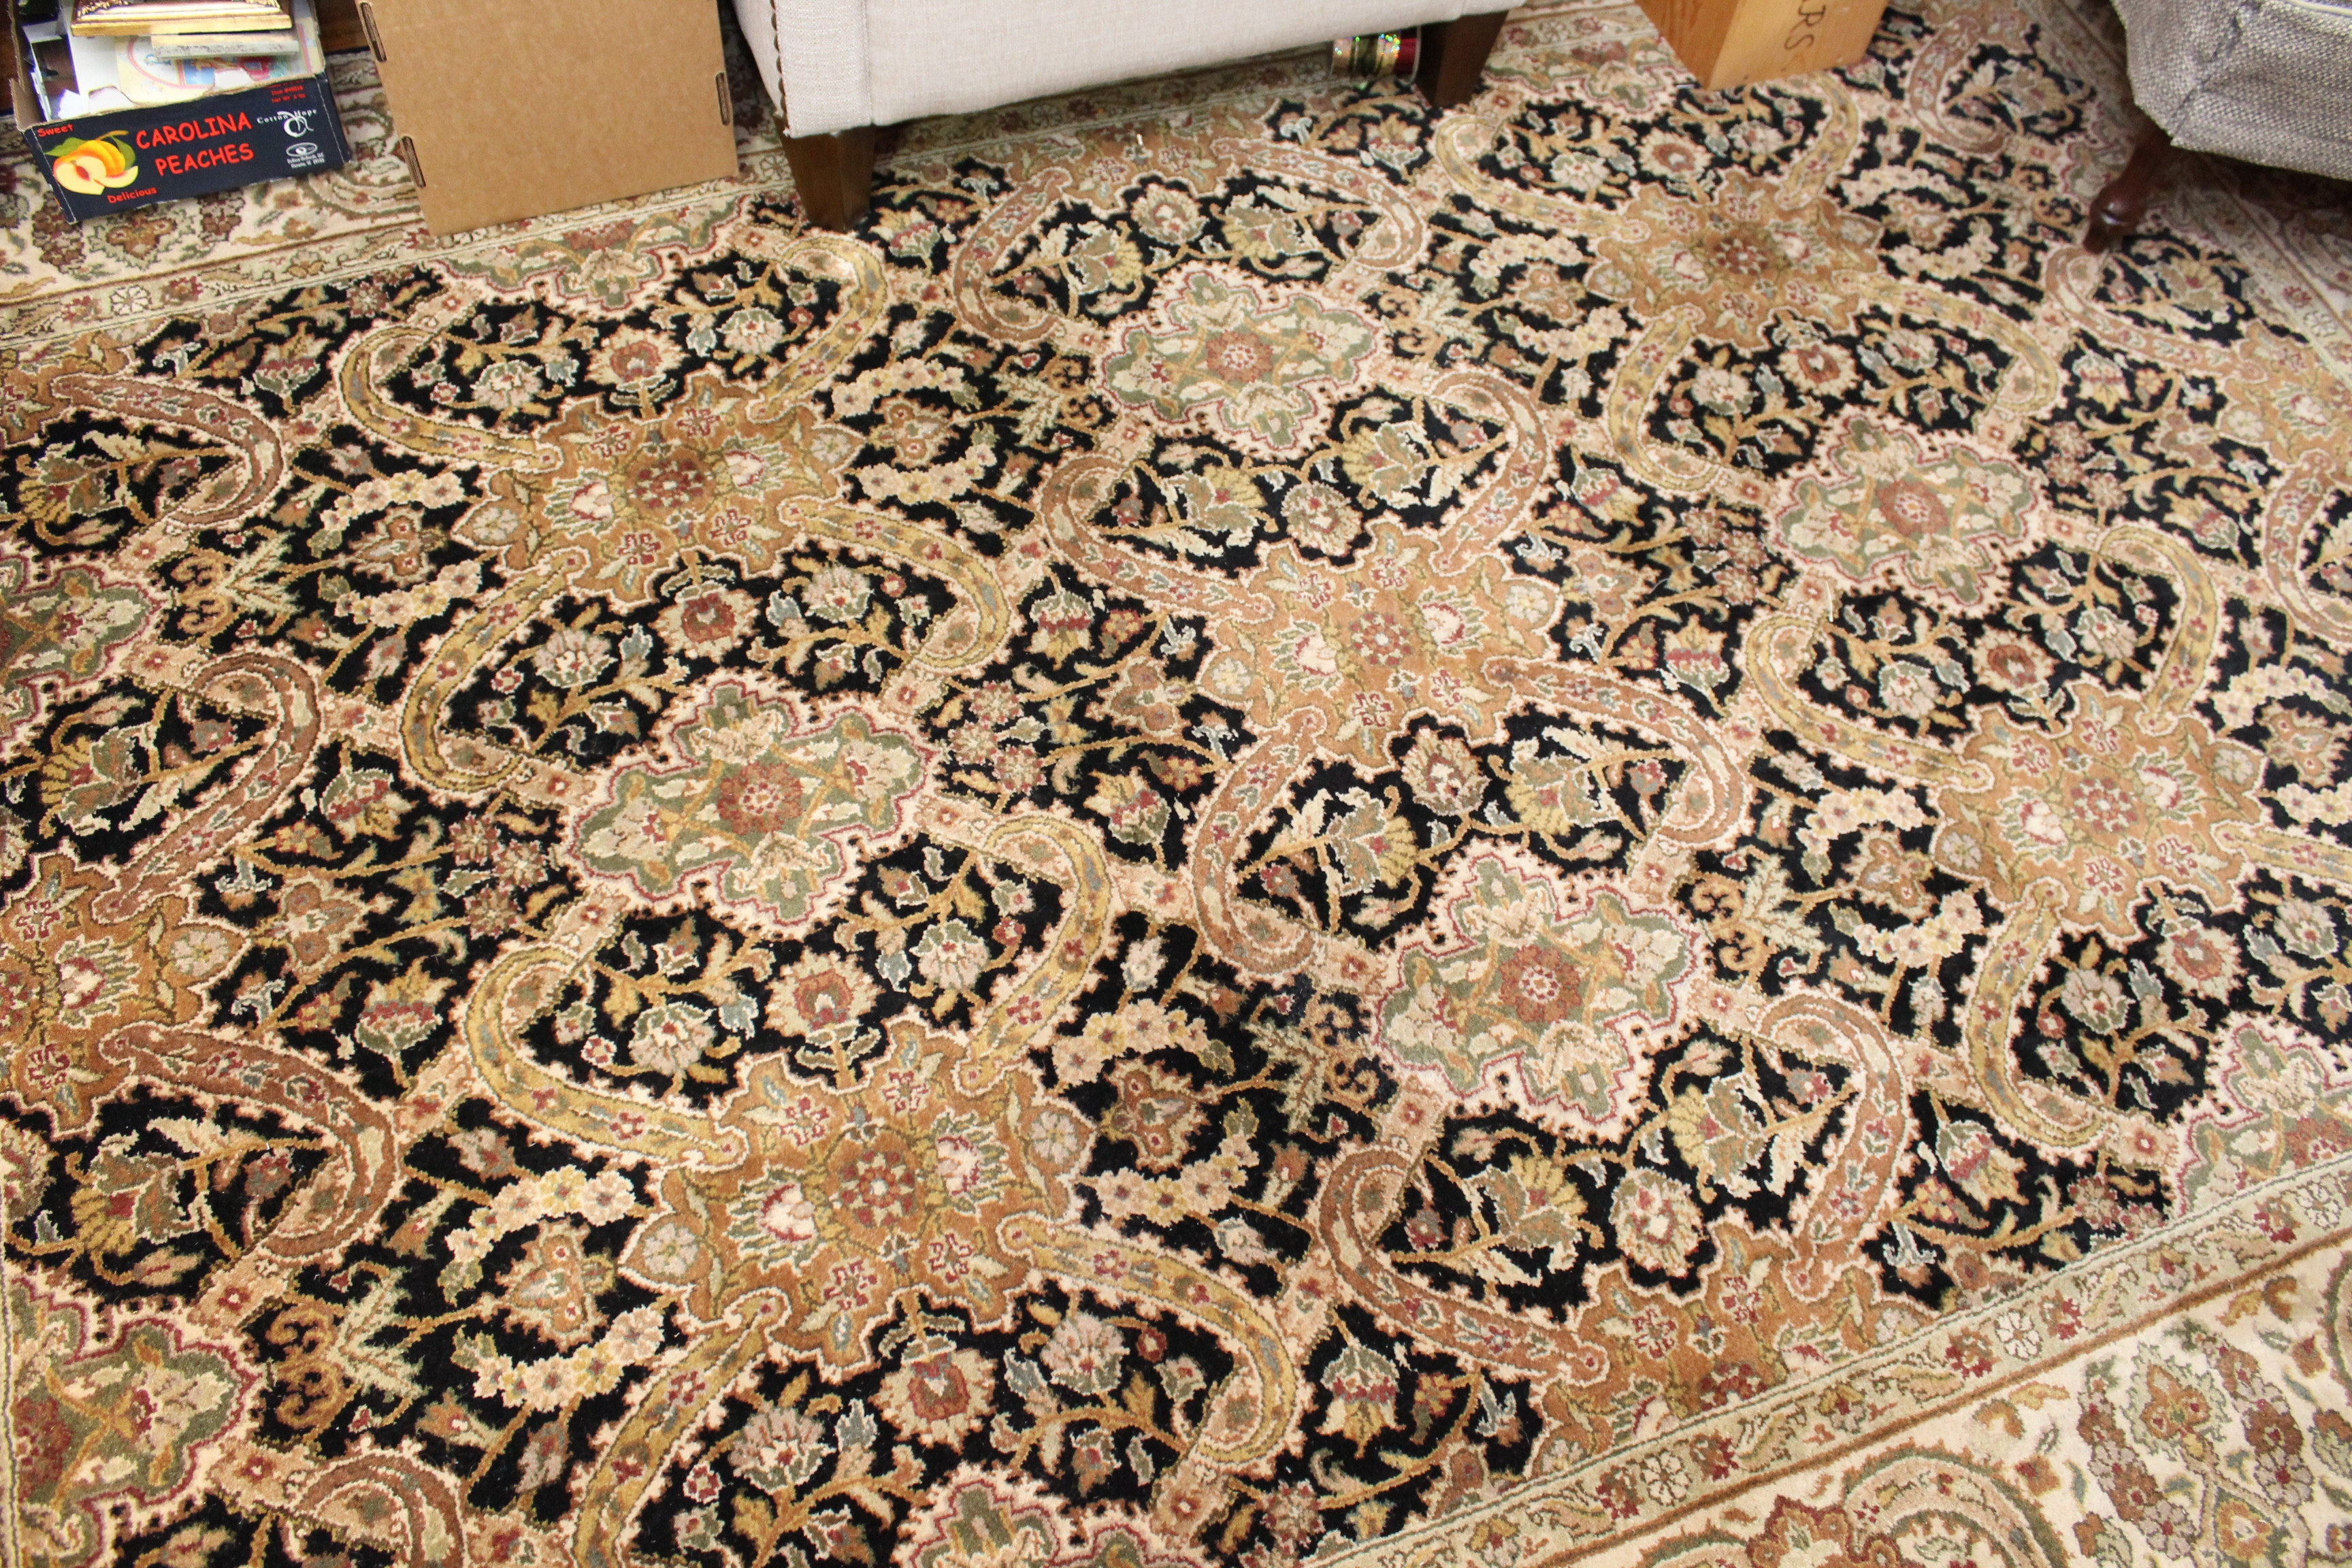 Ornate Hand-Knotted Indo-Perisan Wool Area Rug